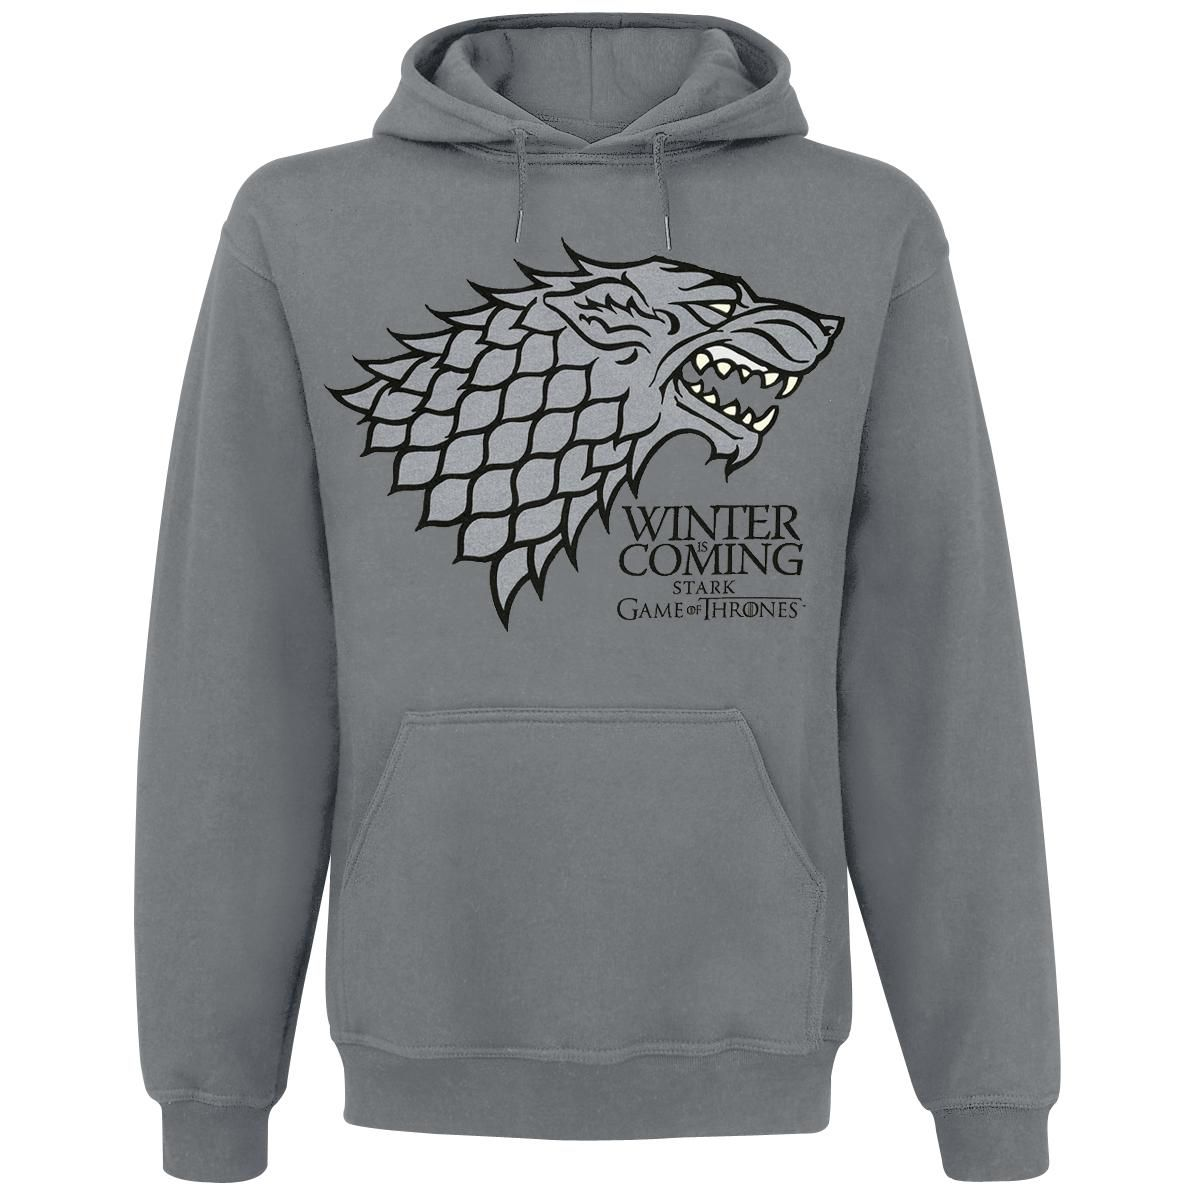 Winter Is Coming Game Of Thrones Hoodie Game Of Thrones Winter Game Of Thrones Merchandise